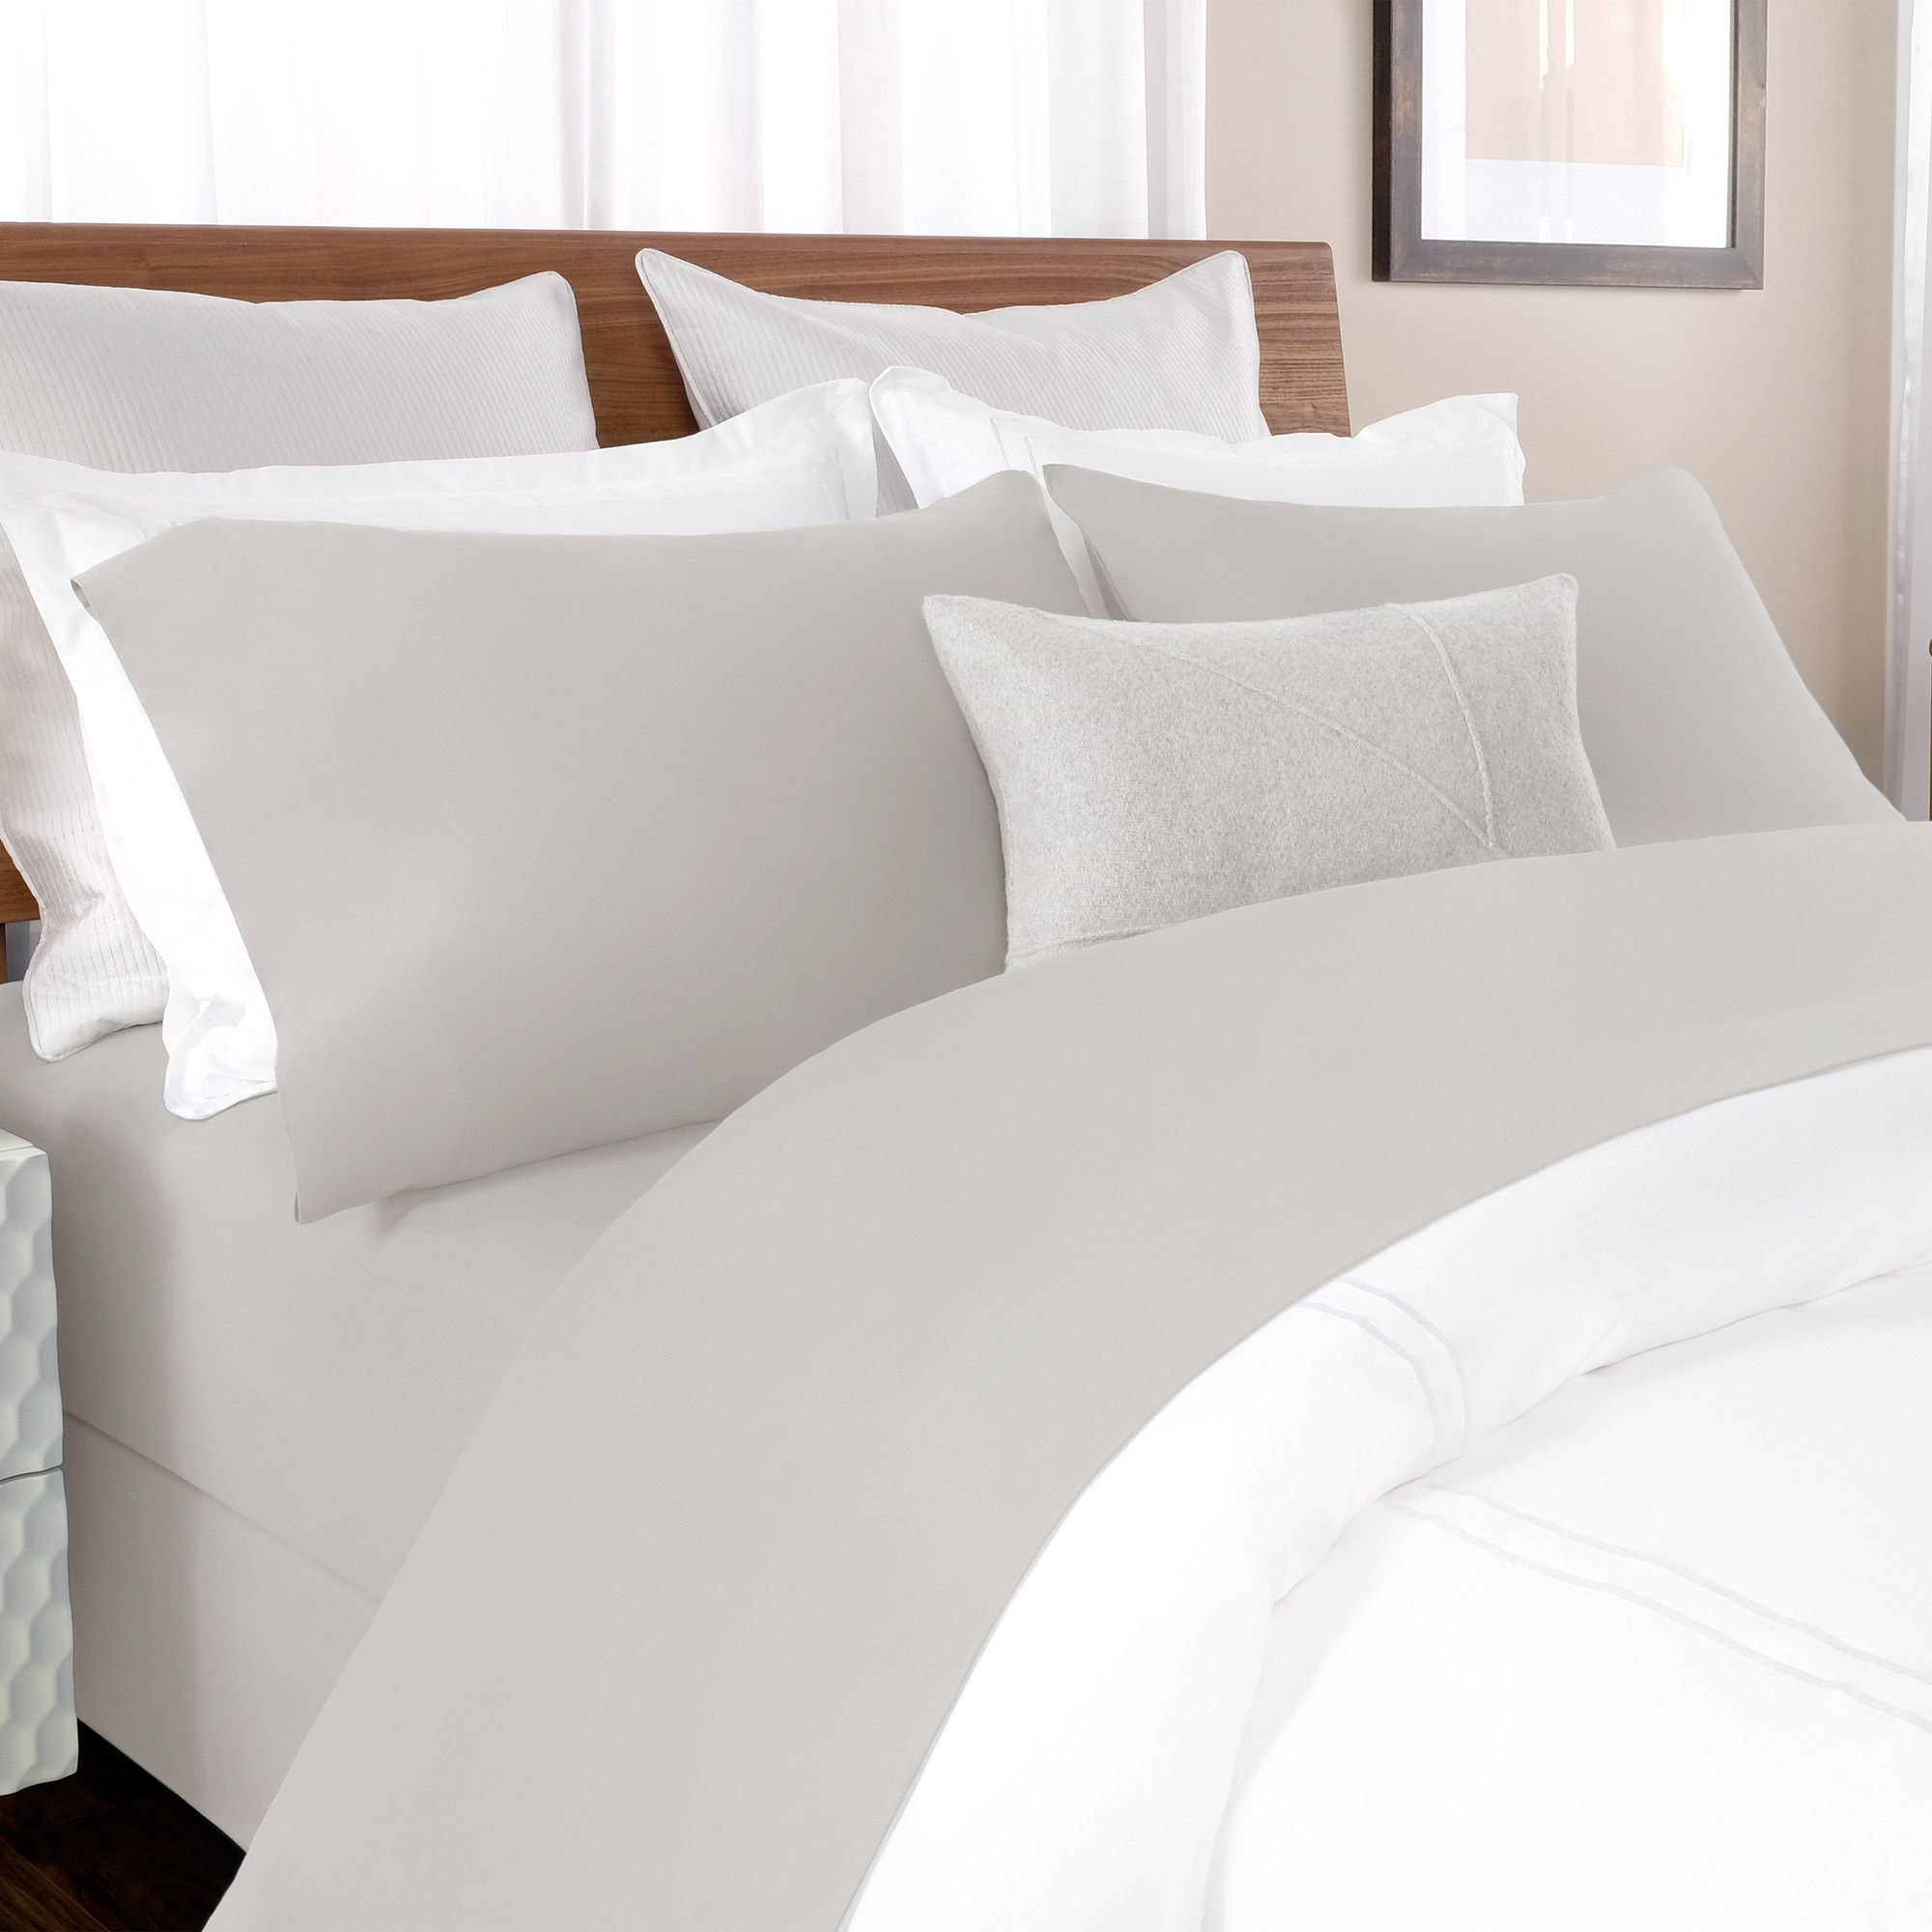 0983276a5f 100% Cotton Solid Percale Sheet Set | Products | Percale sheets ...